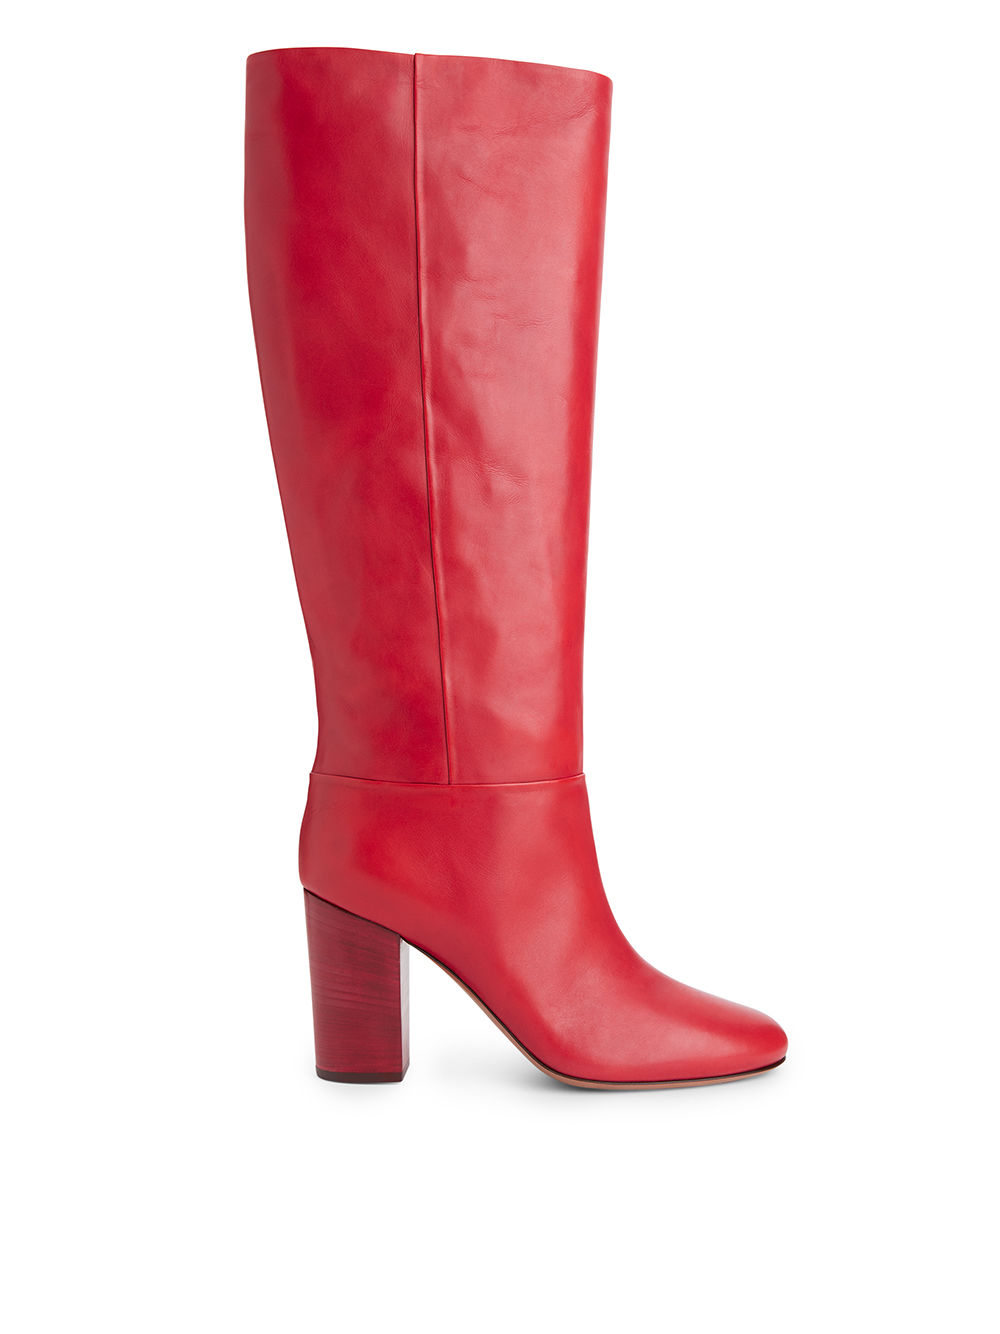 Fabric Swatch image of Arket high-heel leather boots in red